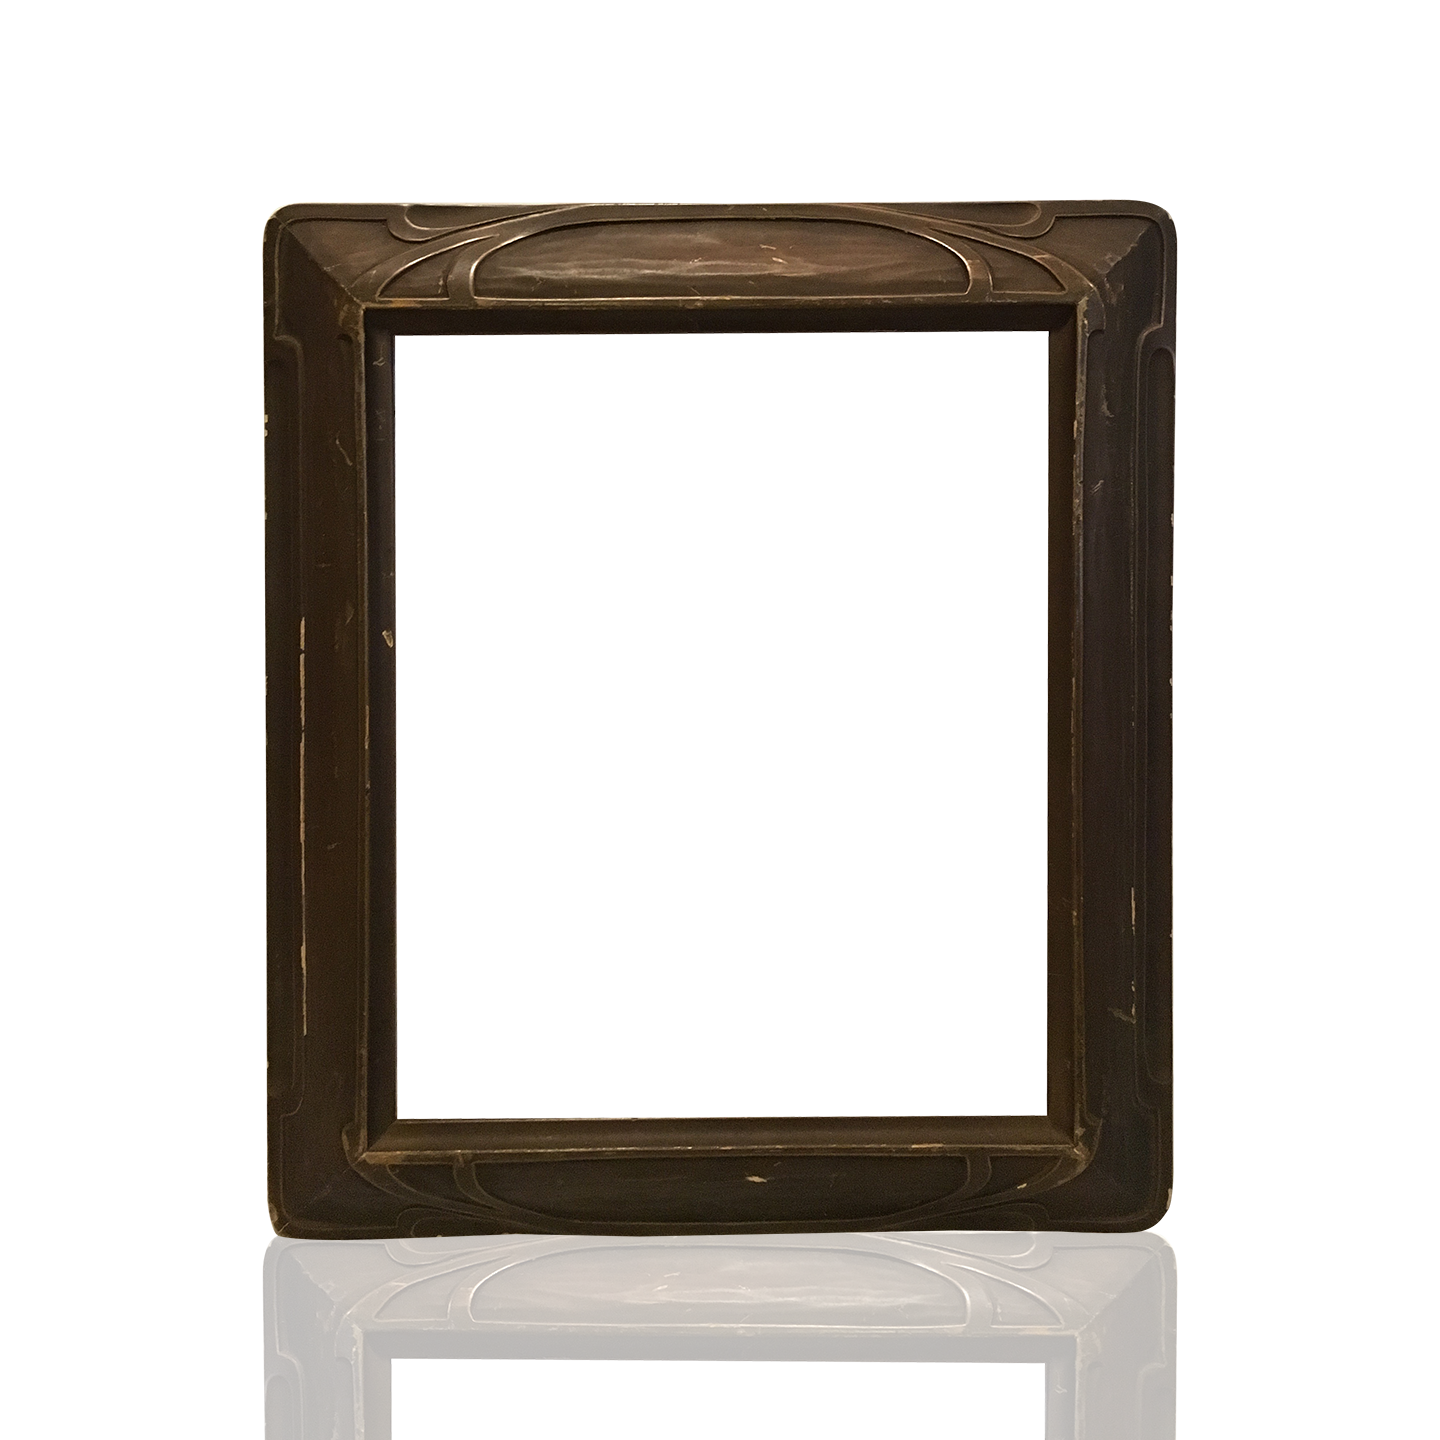 Arts and crafts american frame circa 1900 from here to for Craftsman frame